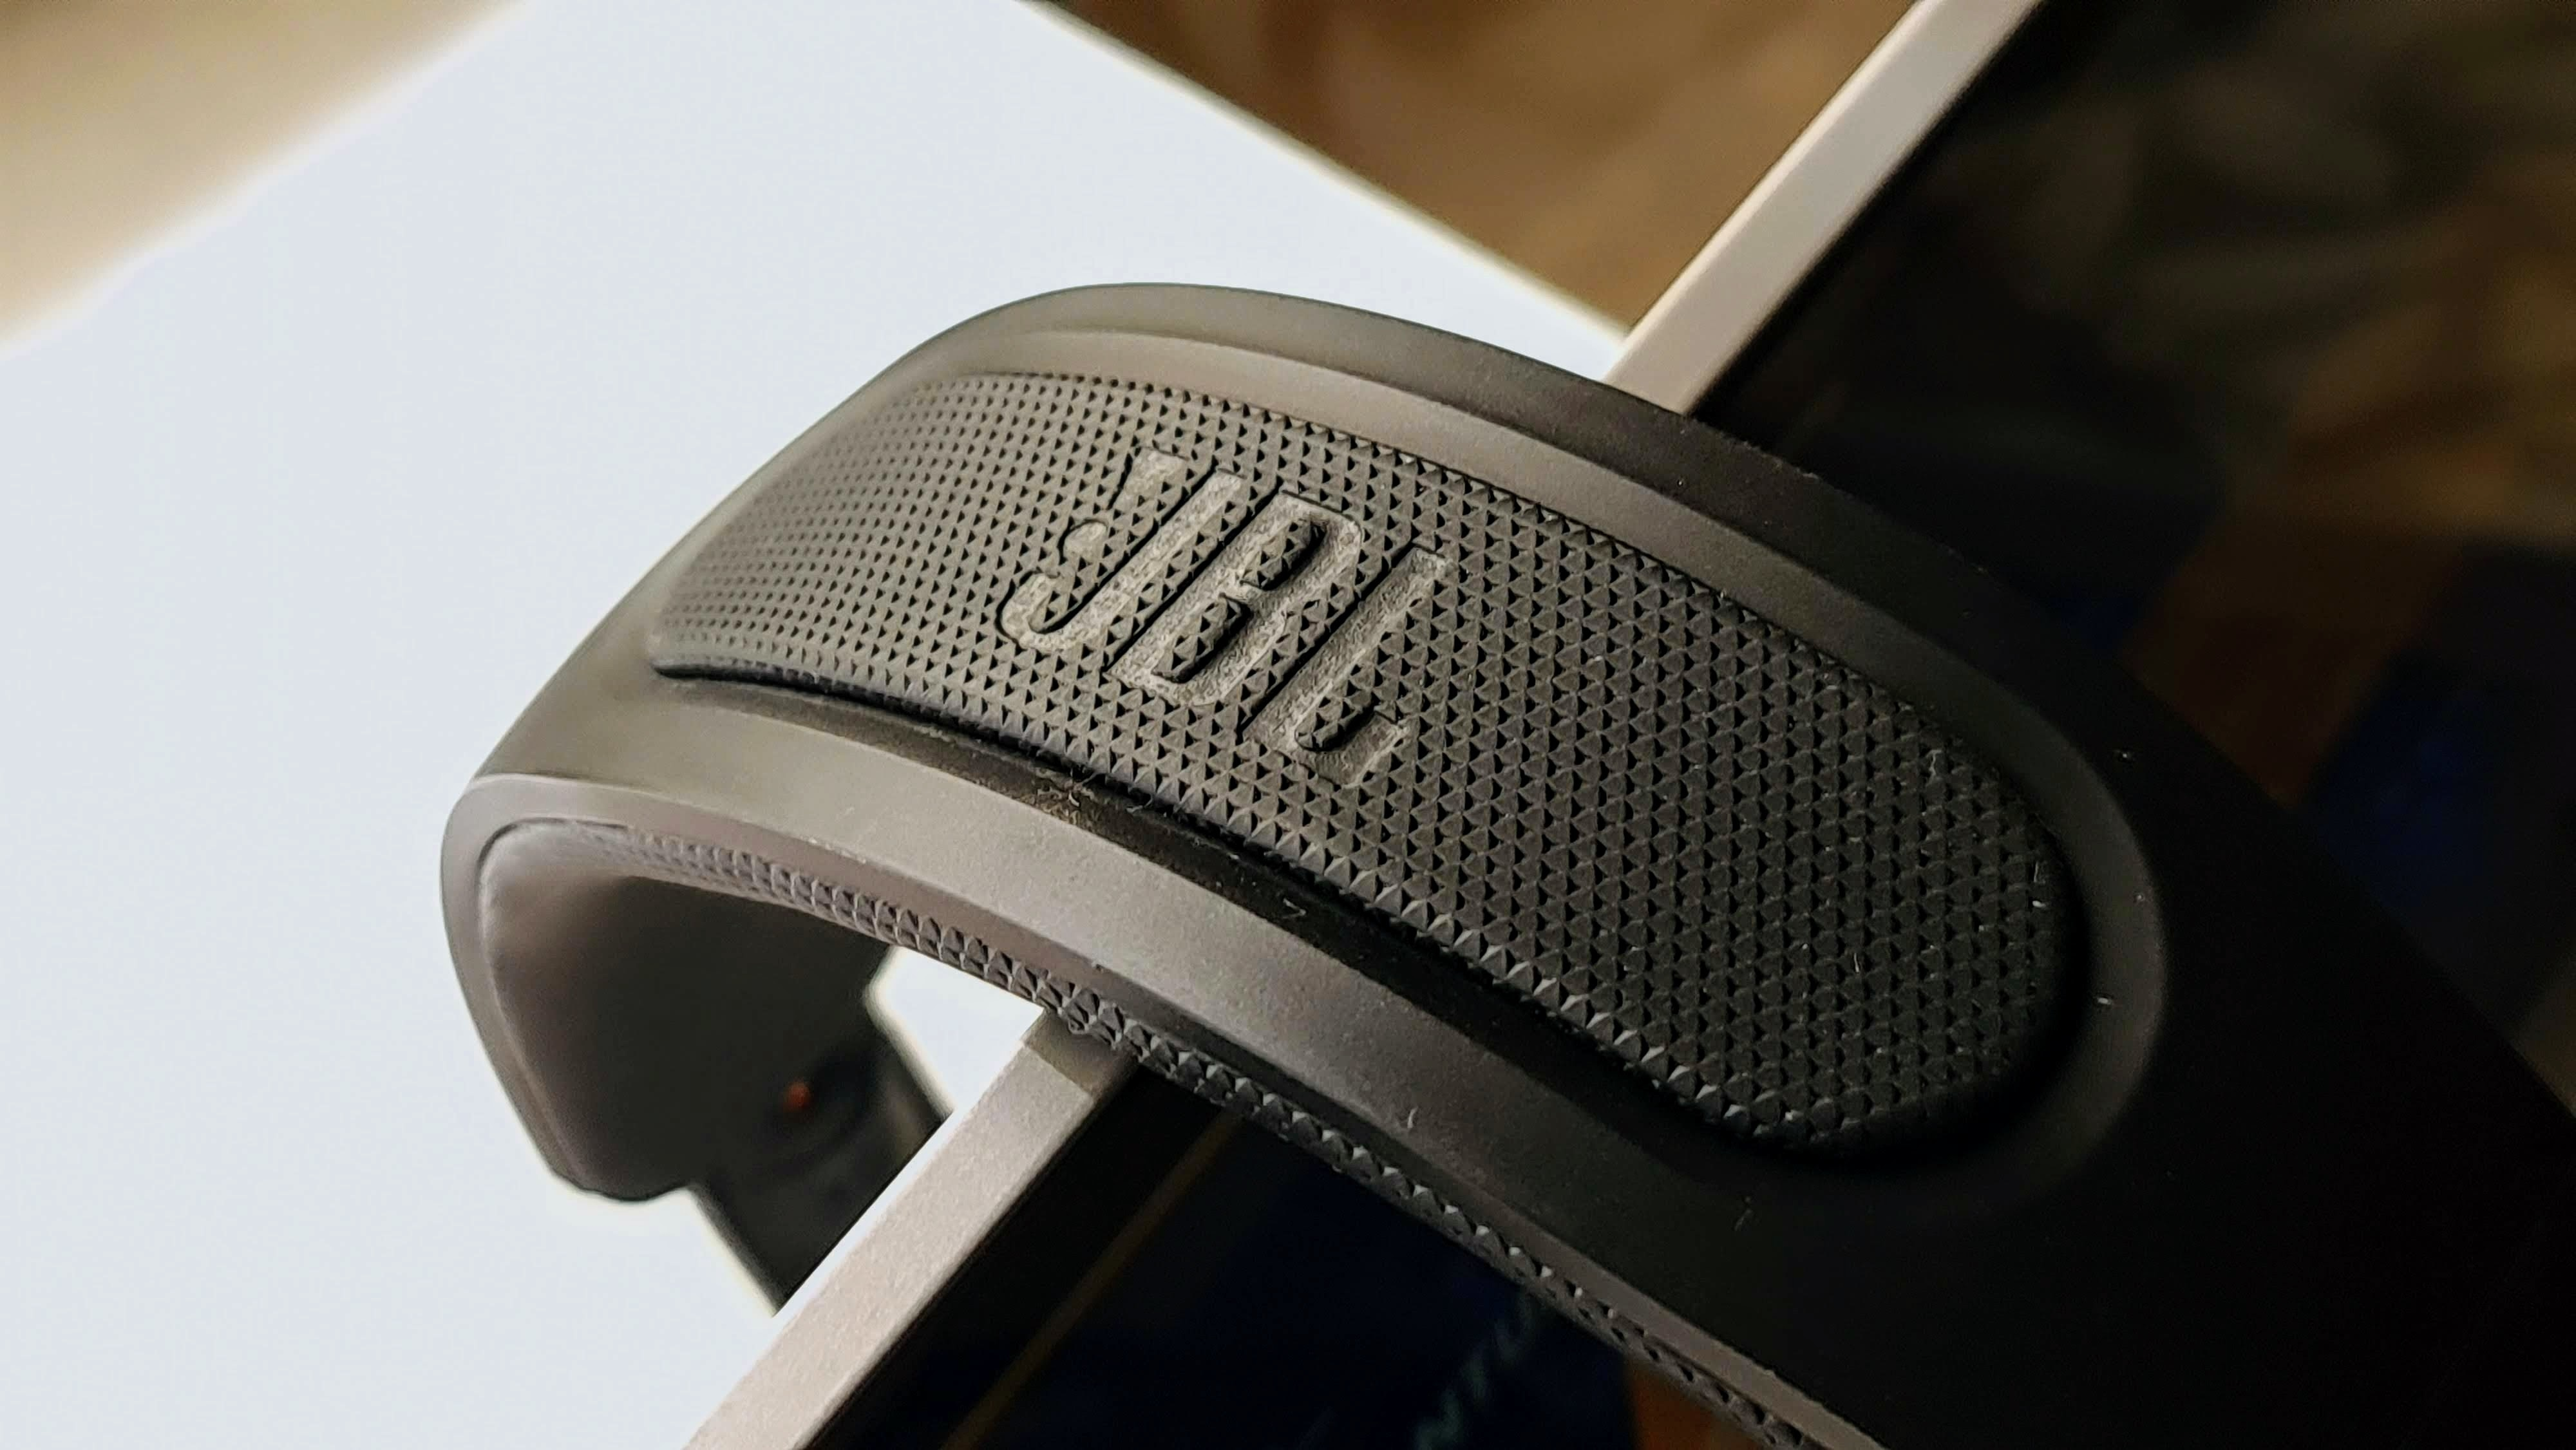 All of them feature JBL's QuantumSOUND Signature tech for a more immersive experience along with a 3.5mm headphone slot.